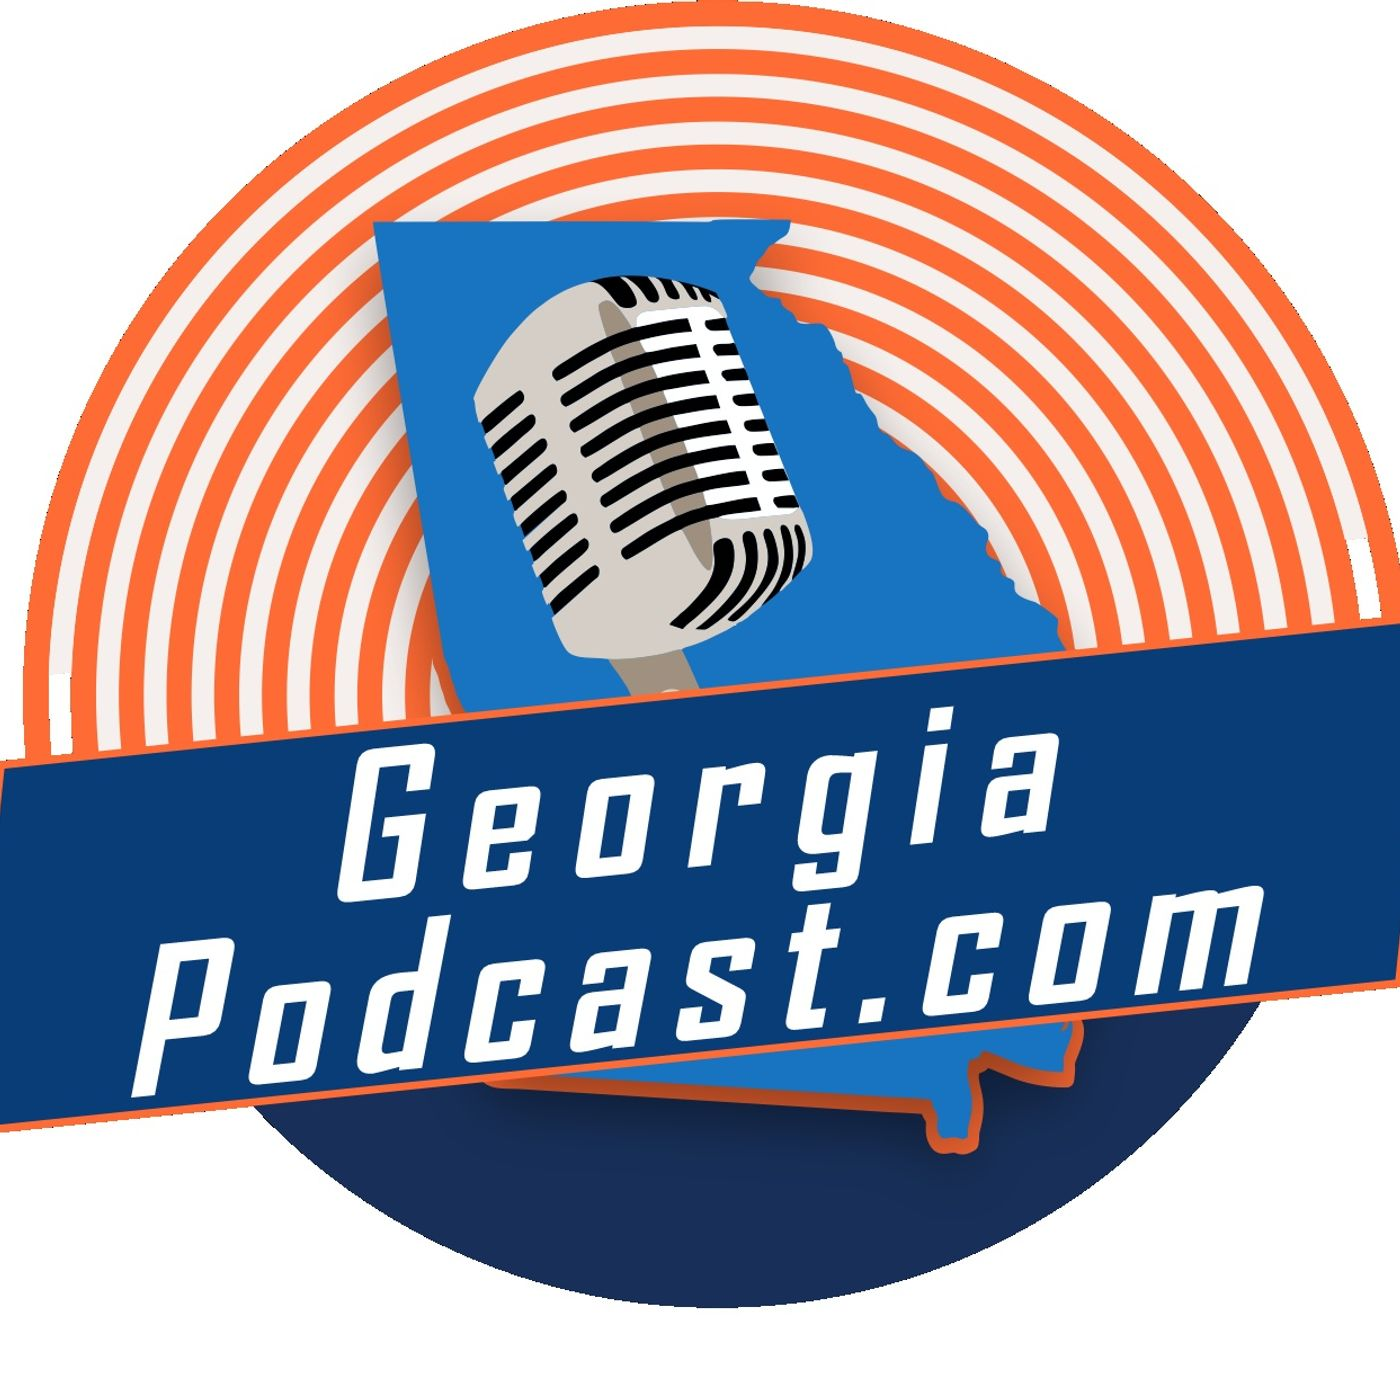 World Chamber of Commerce and Veterans Inn and Resource Program on Georgia Podcast